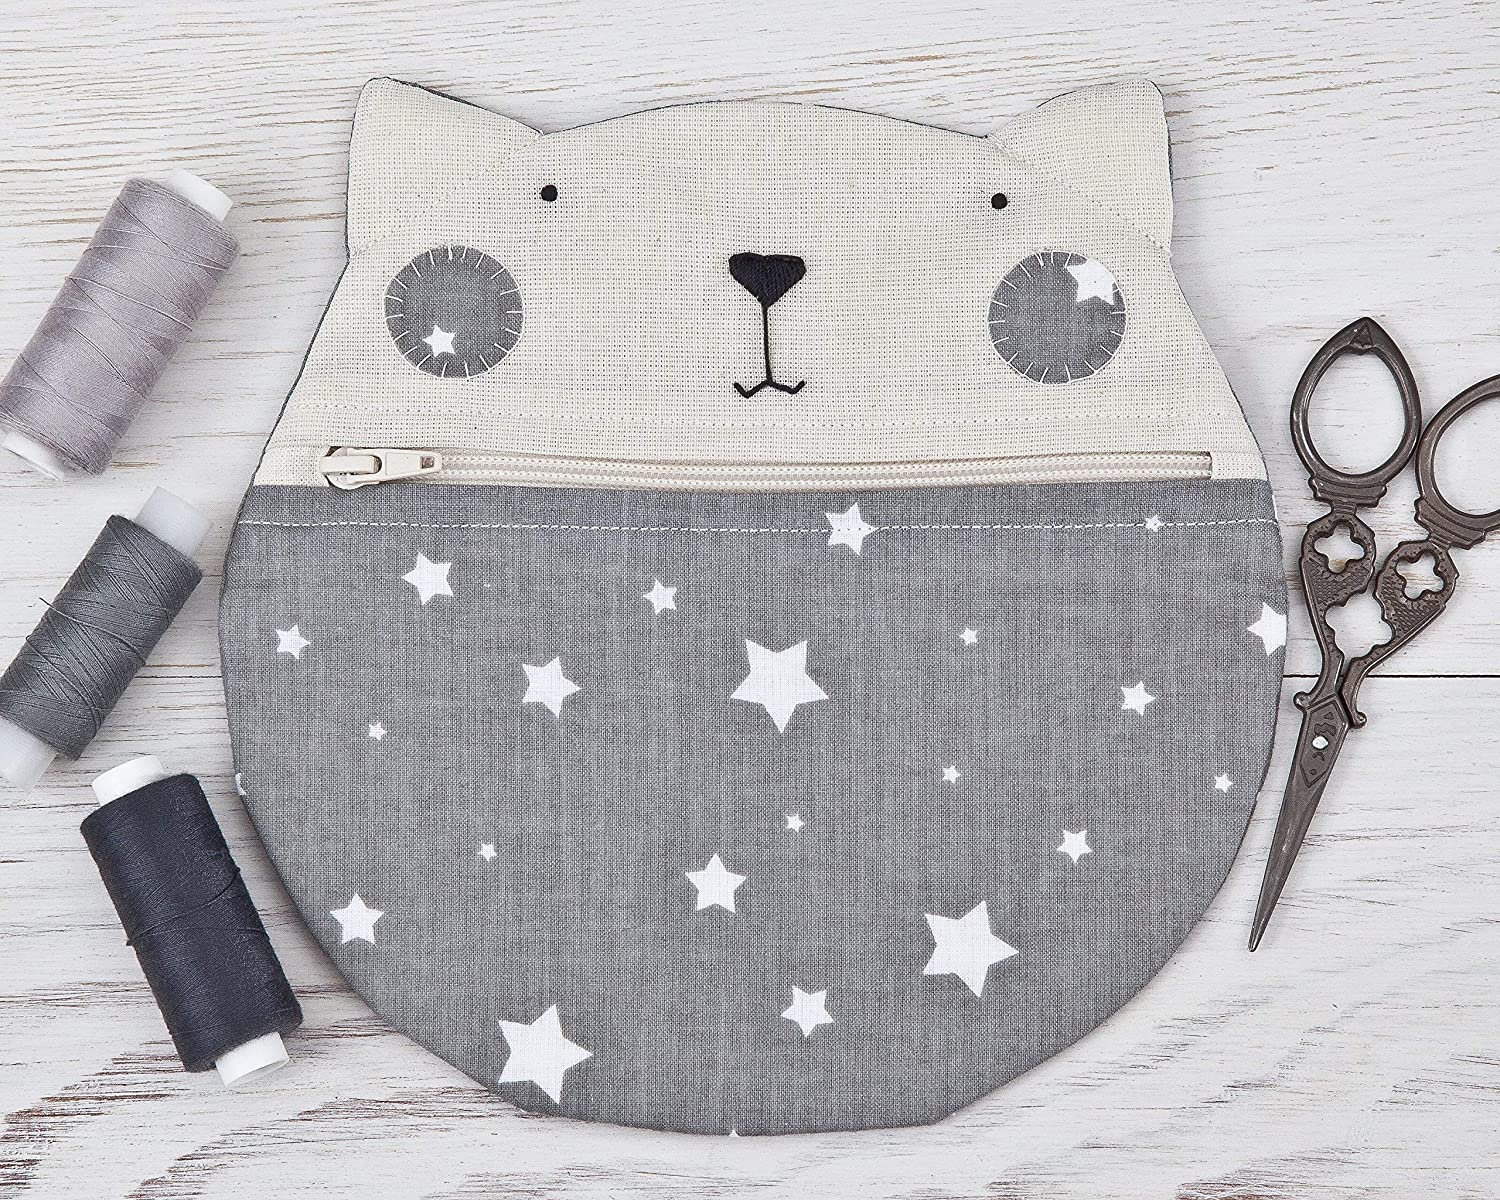 Gray Cat Cosmetic Bag with the stars, Makeup Bag - 20 x 20 cm. (7.8 x 7.8 in.), Round Pencil Case, Gift for Girlfriend, Cat Lover Gift